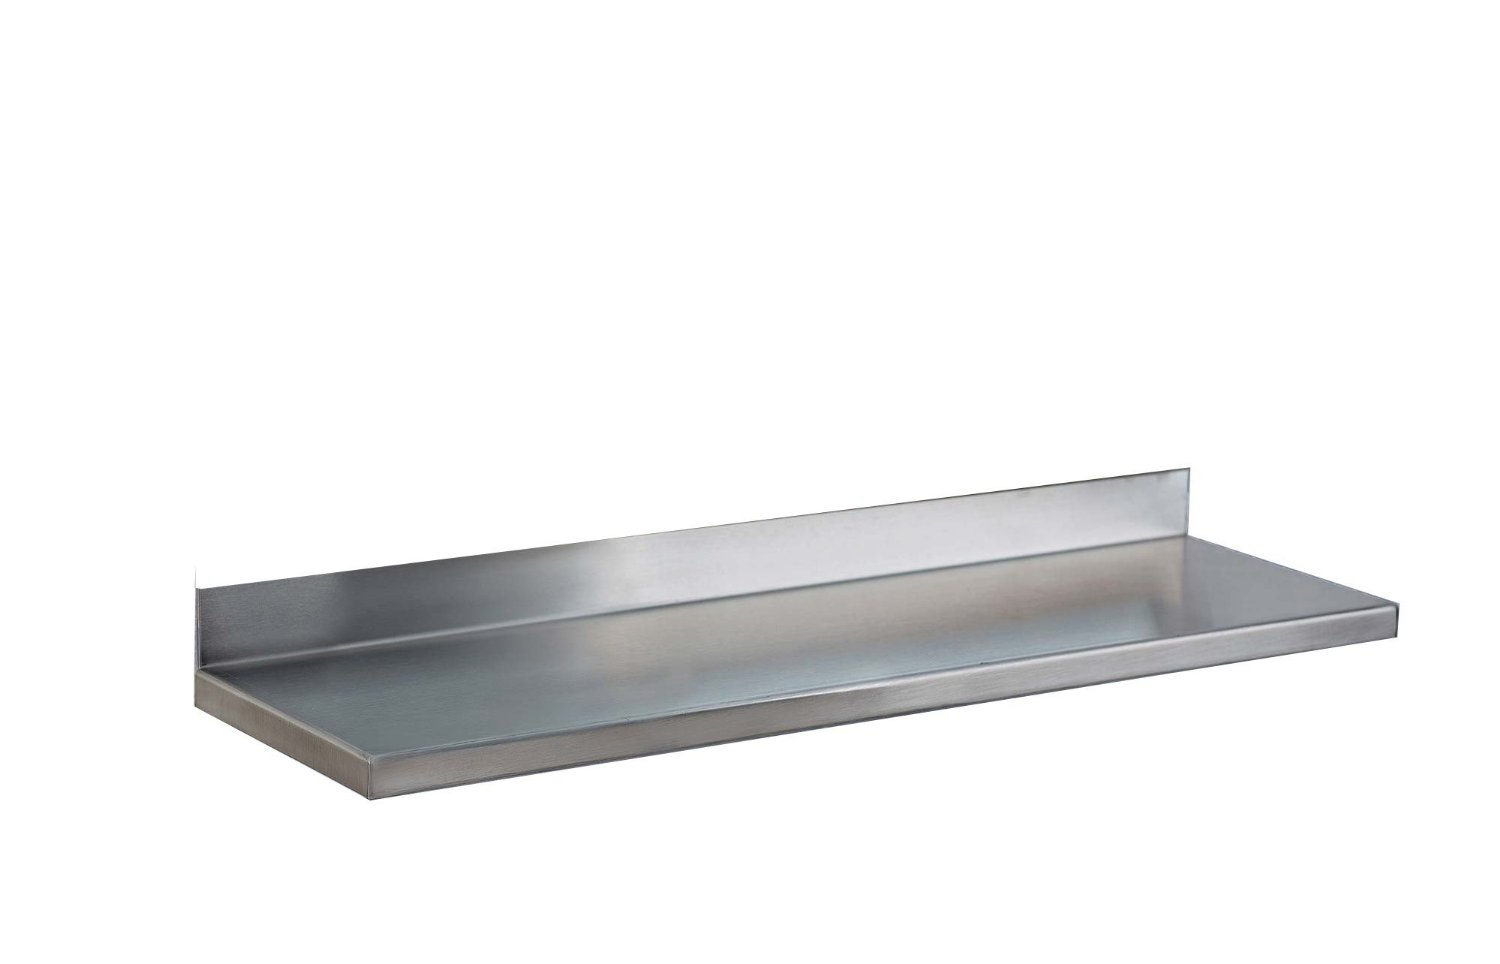 24-inch x 5-inch, Integral shelf, bright finish